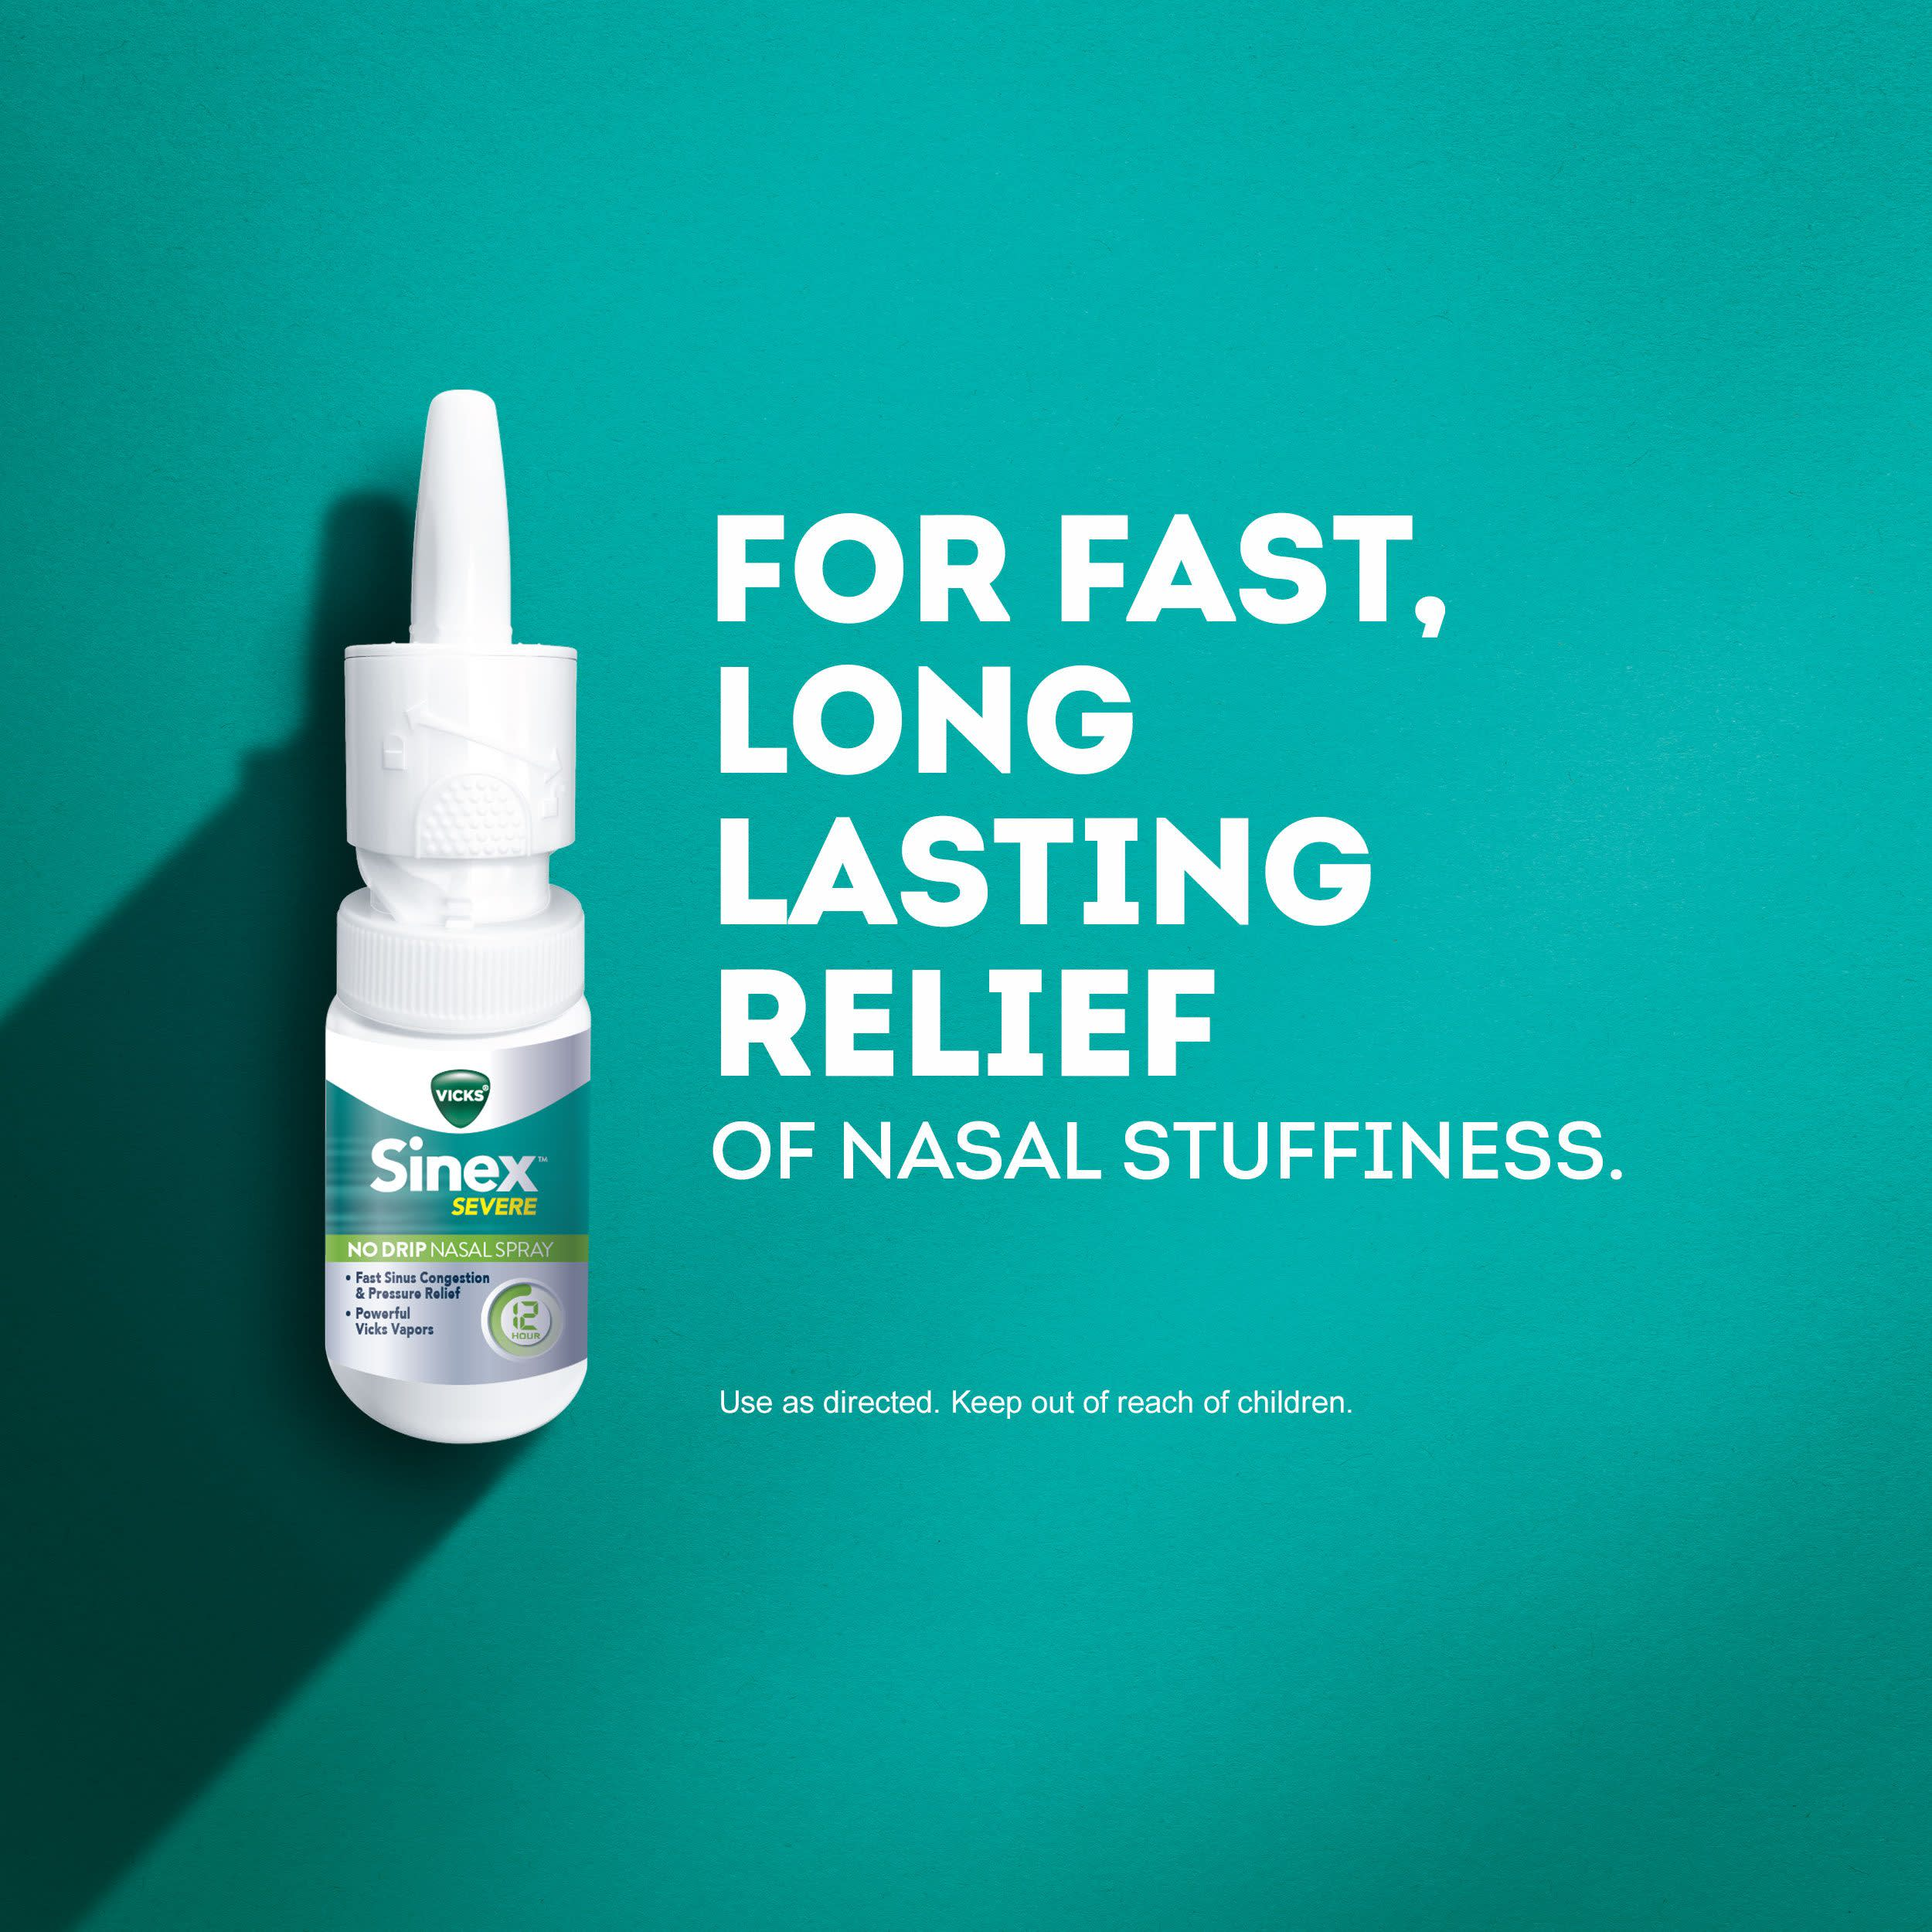 sinex-severe-no-drip-nasal-spray-for-long-lasting-relief